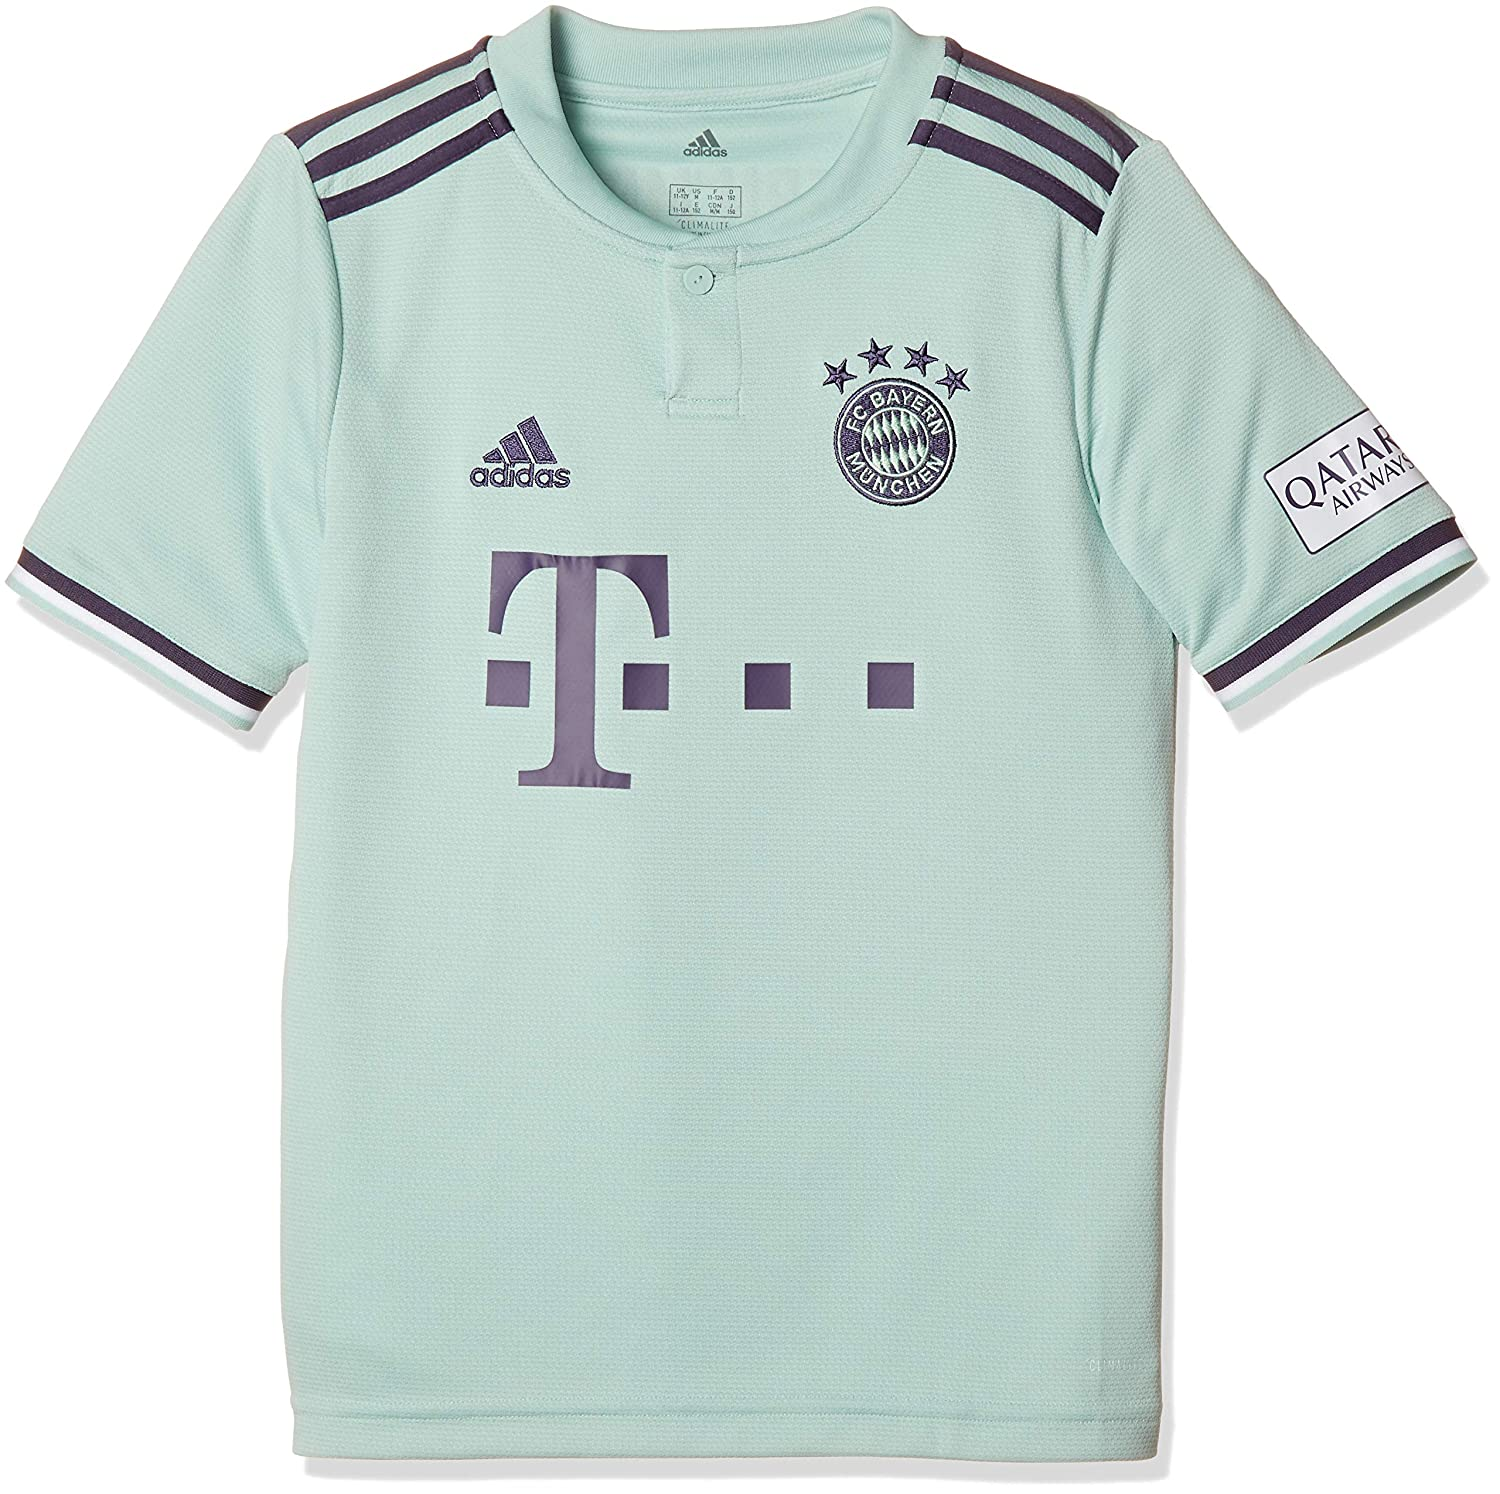 the best attitude 3392a d0736 Amazon.com : adidas 2018-2019 Bayern Munich Away Football ...